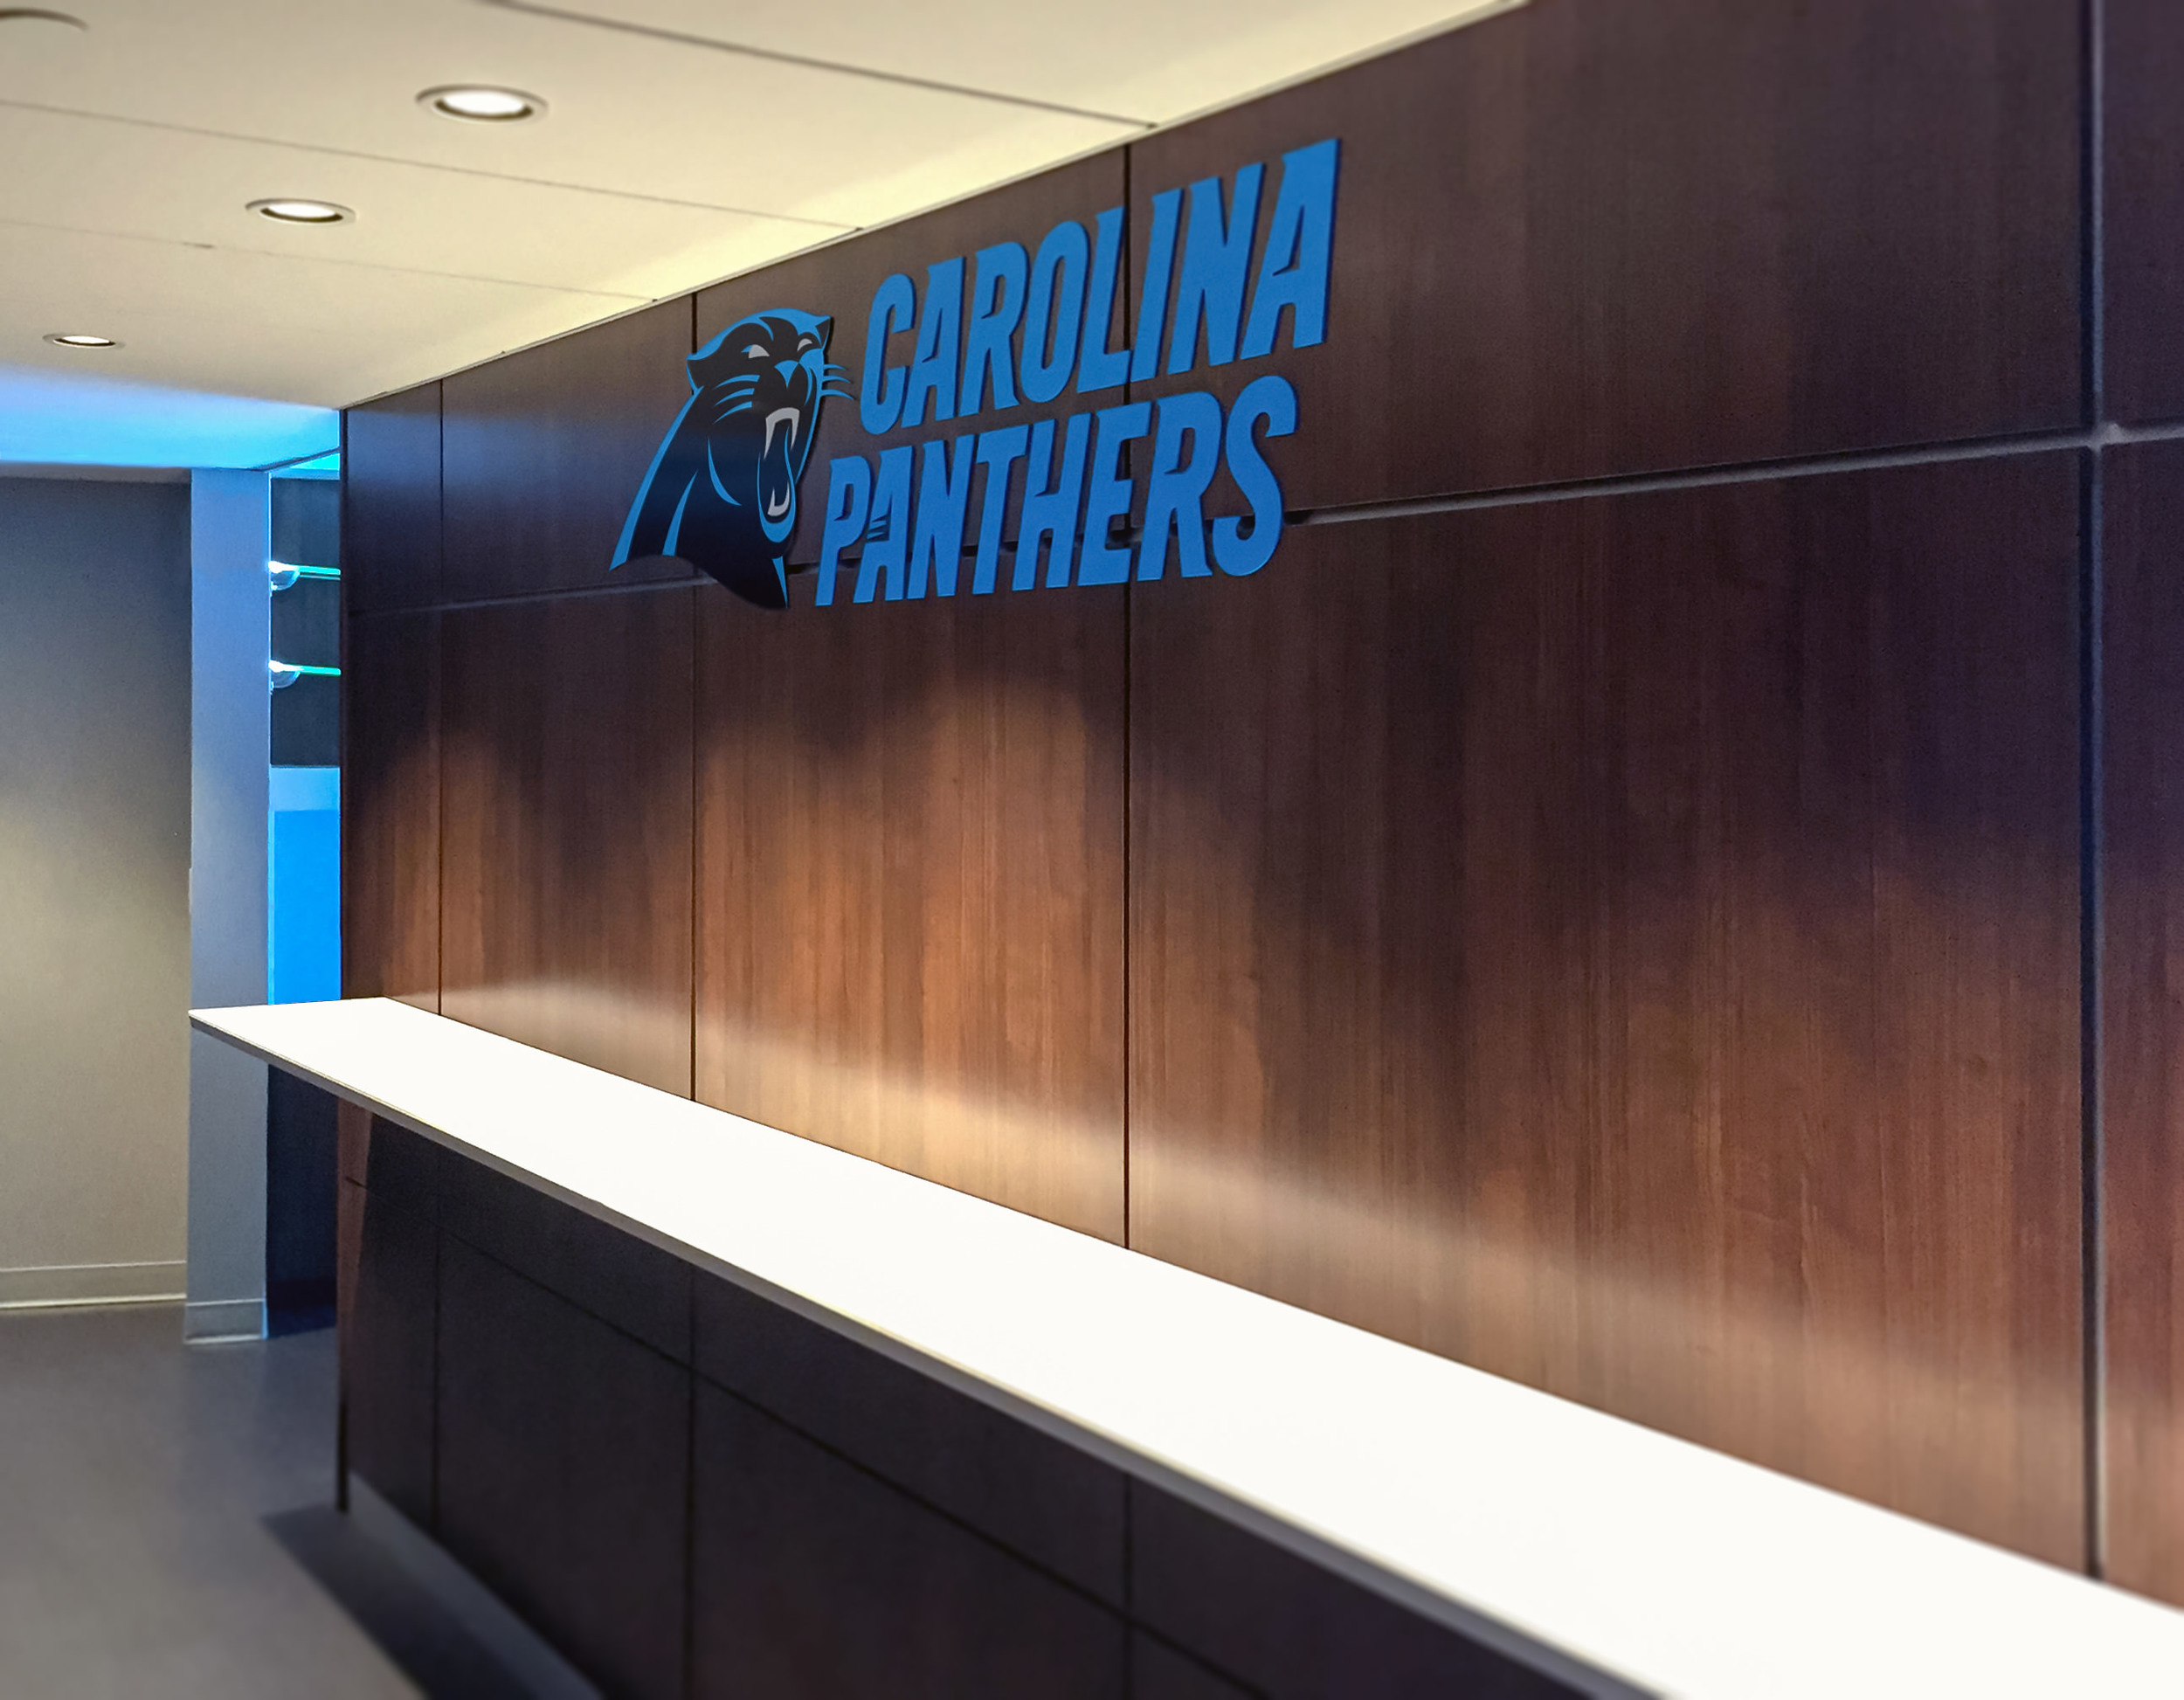 The Carolina Panthers logo is fabricated of aluminum and painted per the Team's colors.